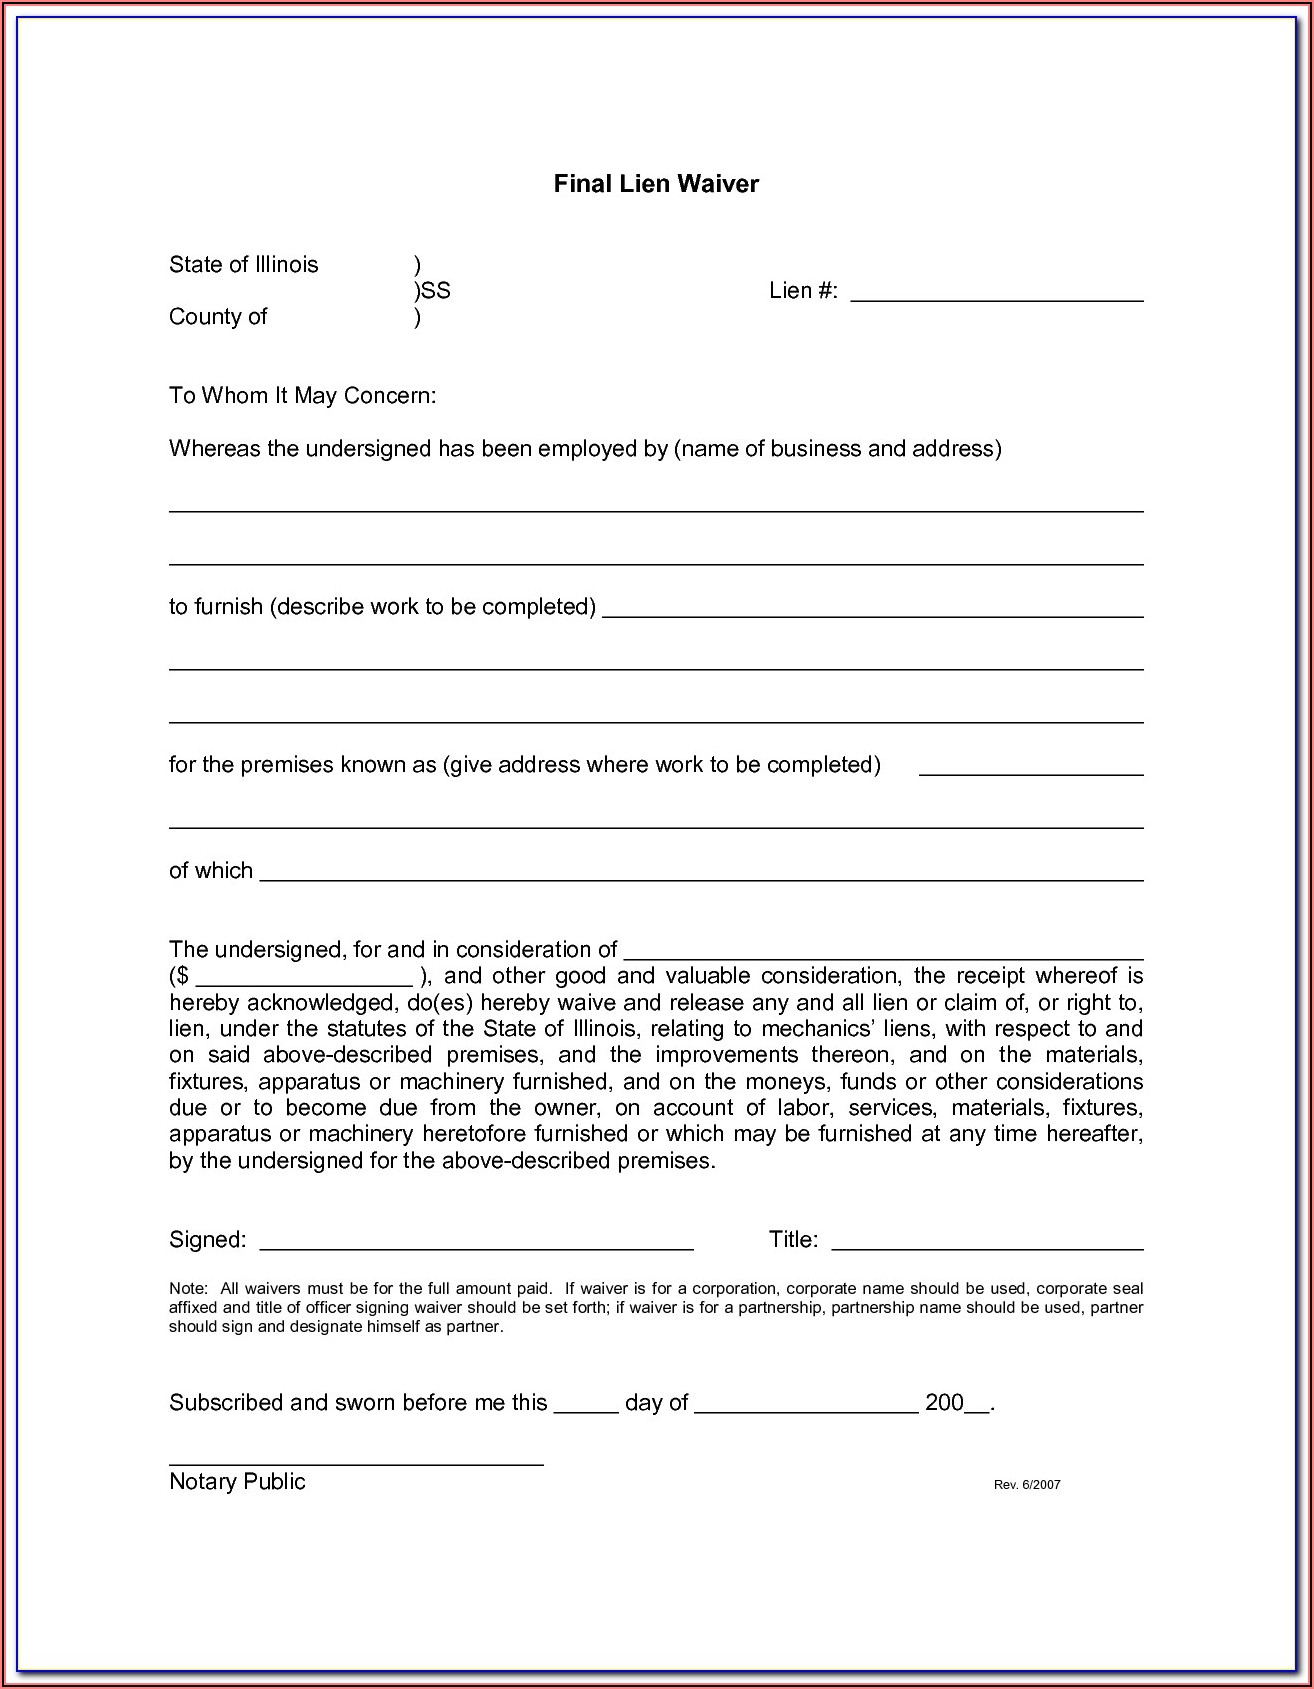 Certificate Of Release Of Federal Tax Lien Form 668(z)